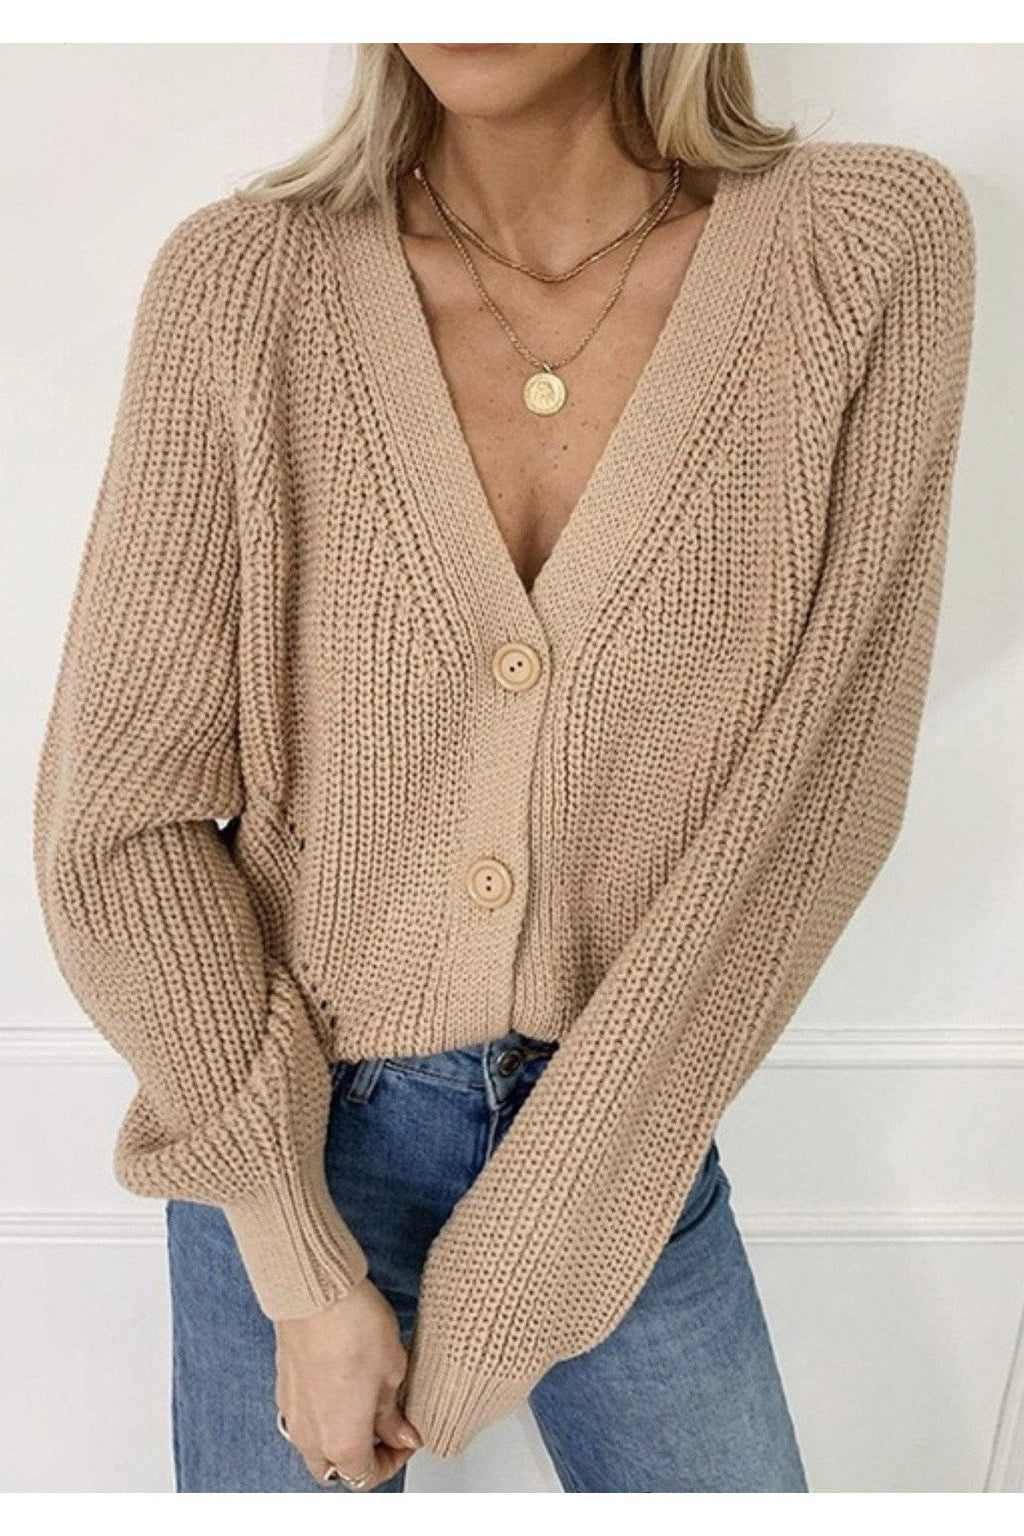 Effie Cropped Cardigan in Khaki